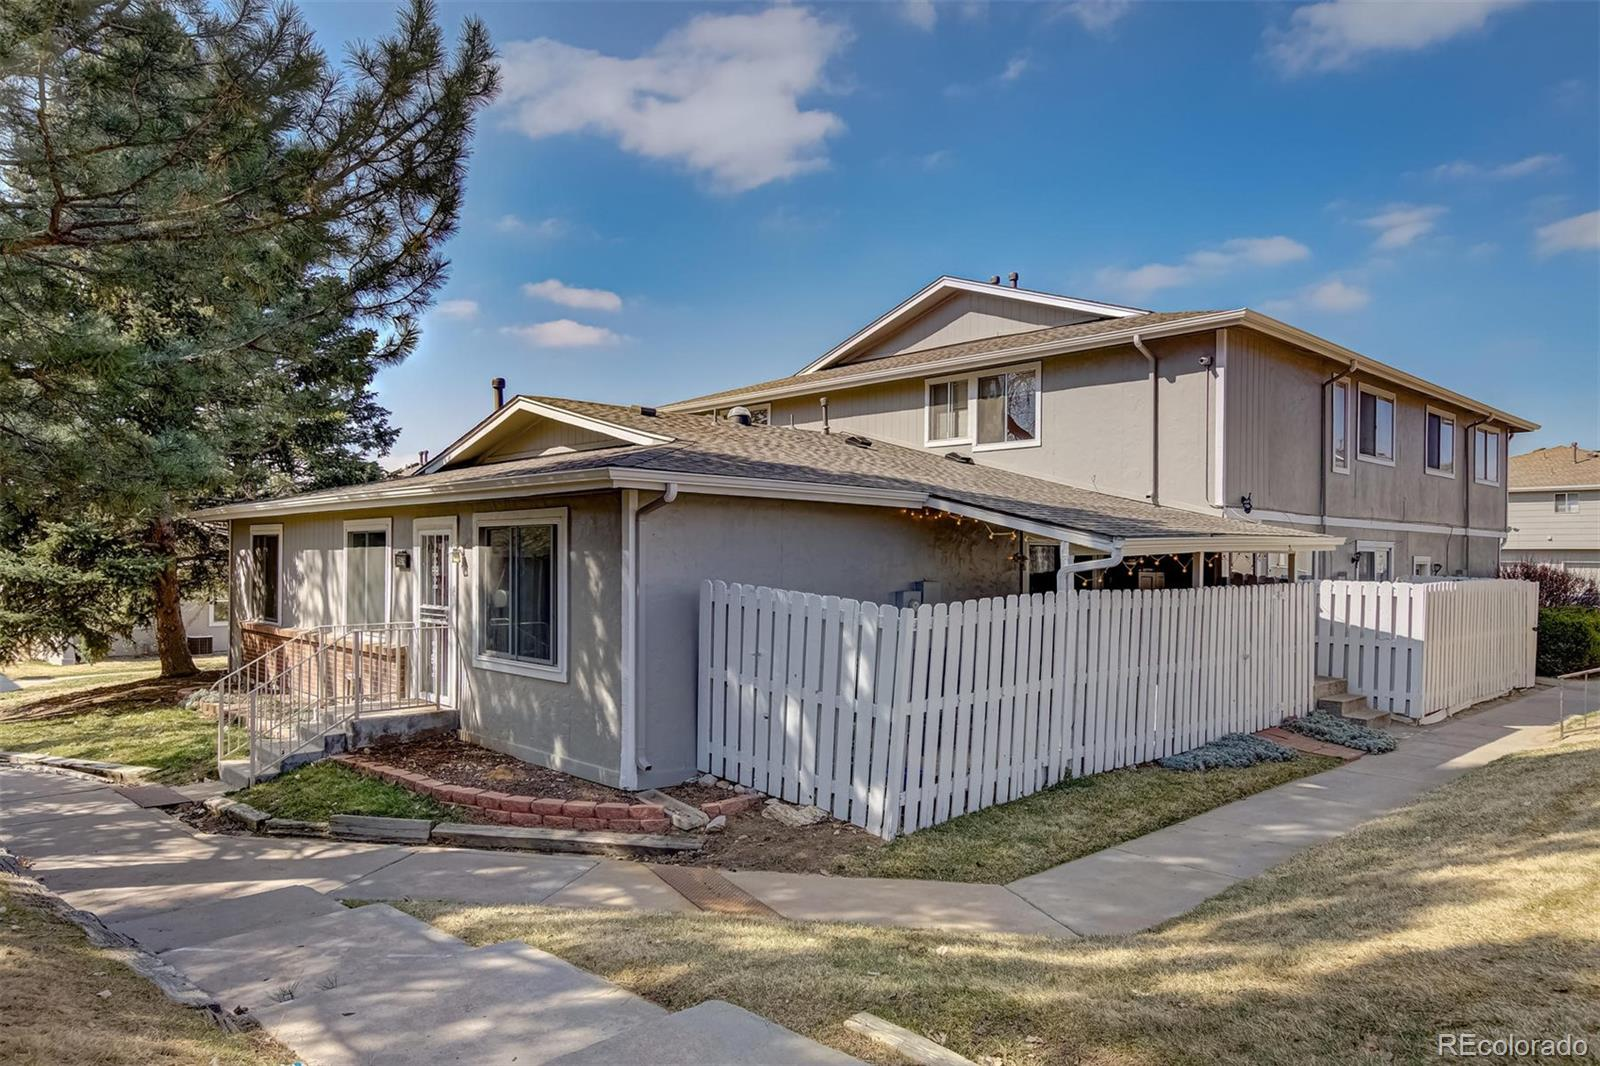 MLS# 7587510 - 2 - 14576 E 13th Avenue, Aurora, CO 80011